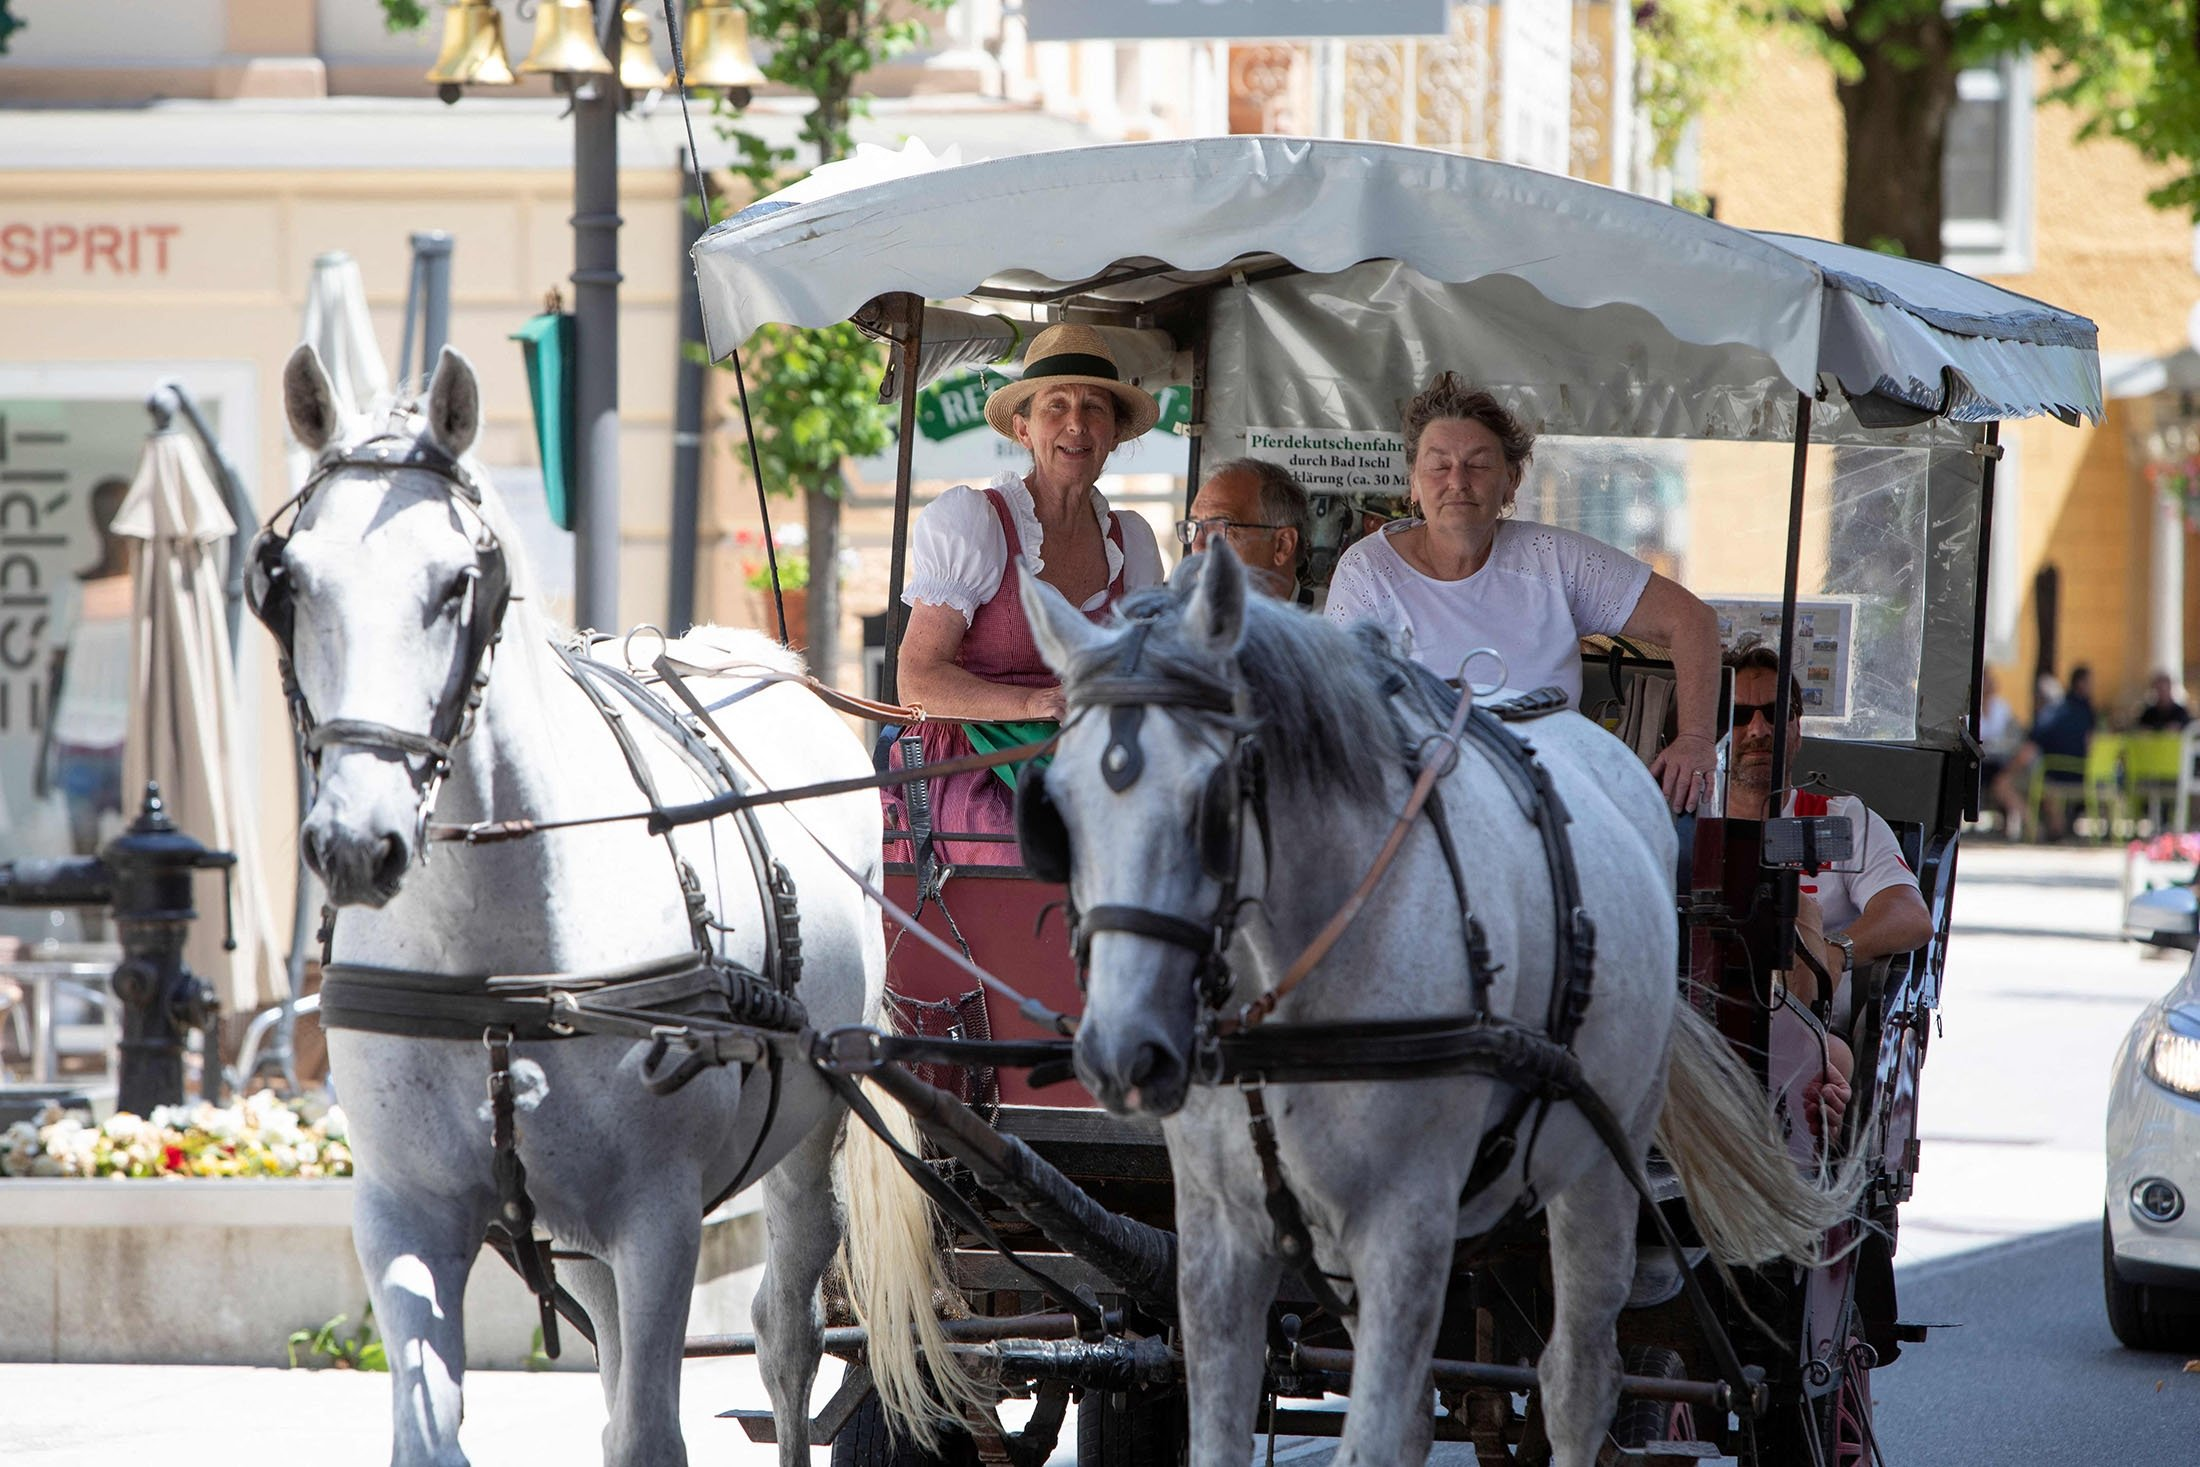 A woman in a traditional dirndl dress sits on a horse carriage in Bad Ischl, Upper Austria, June 24, 2021. (AFP Photo)